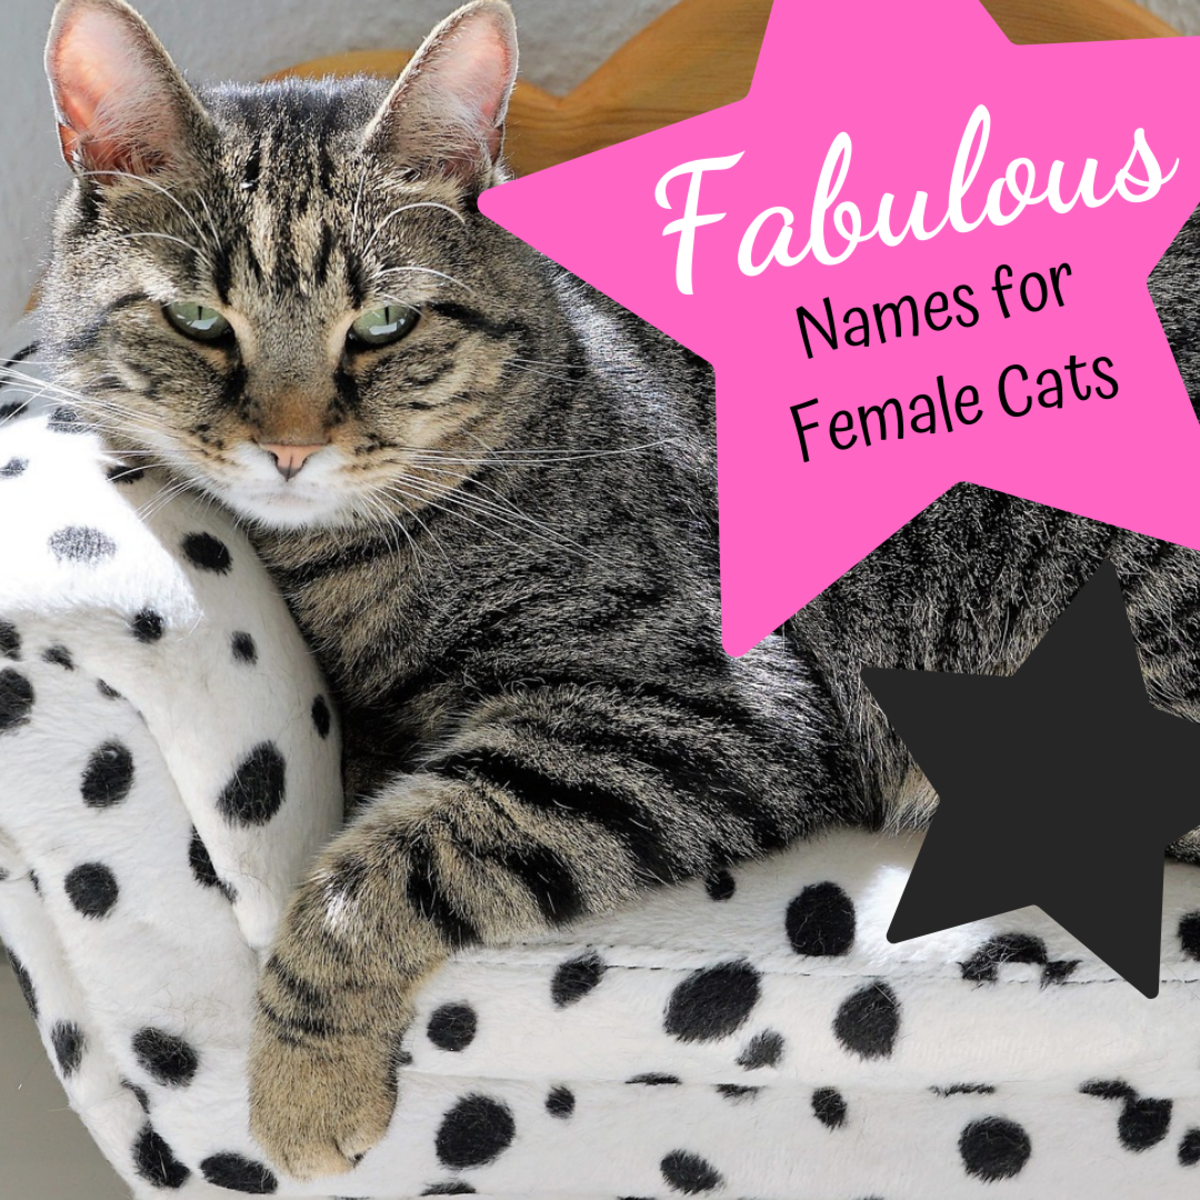 Is your cat fabulous? Find the perfect name for her from these 40 options!